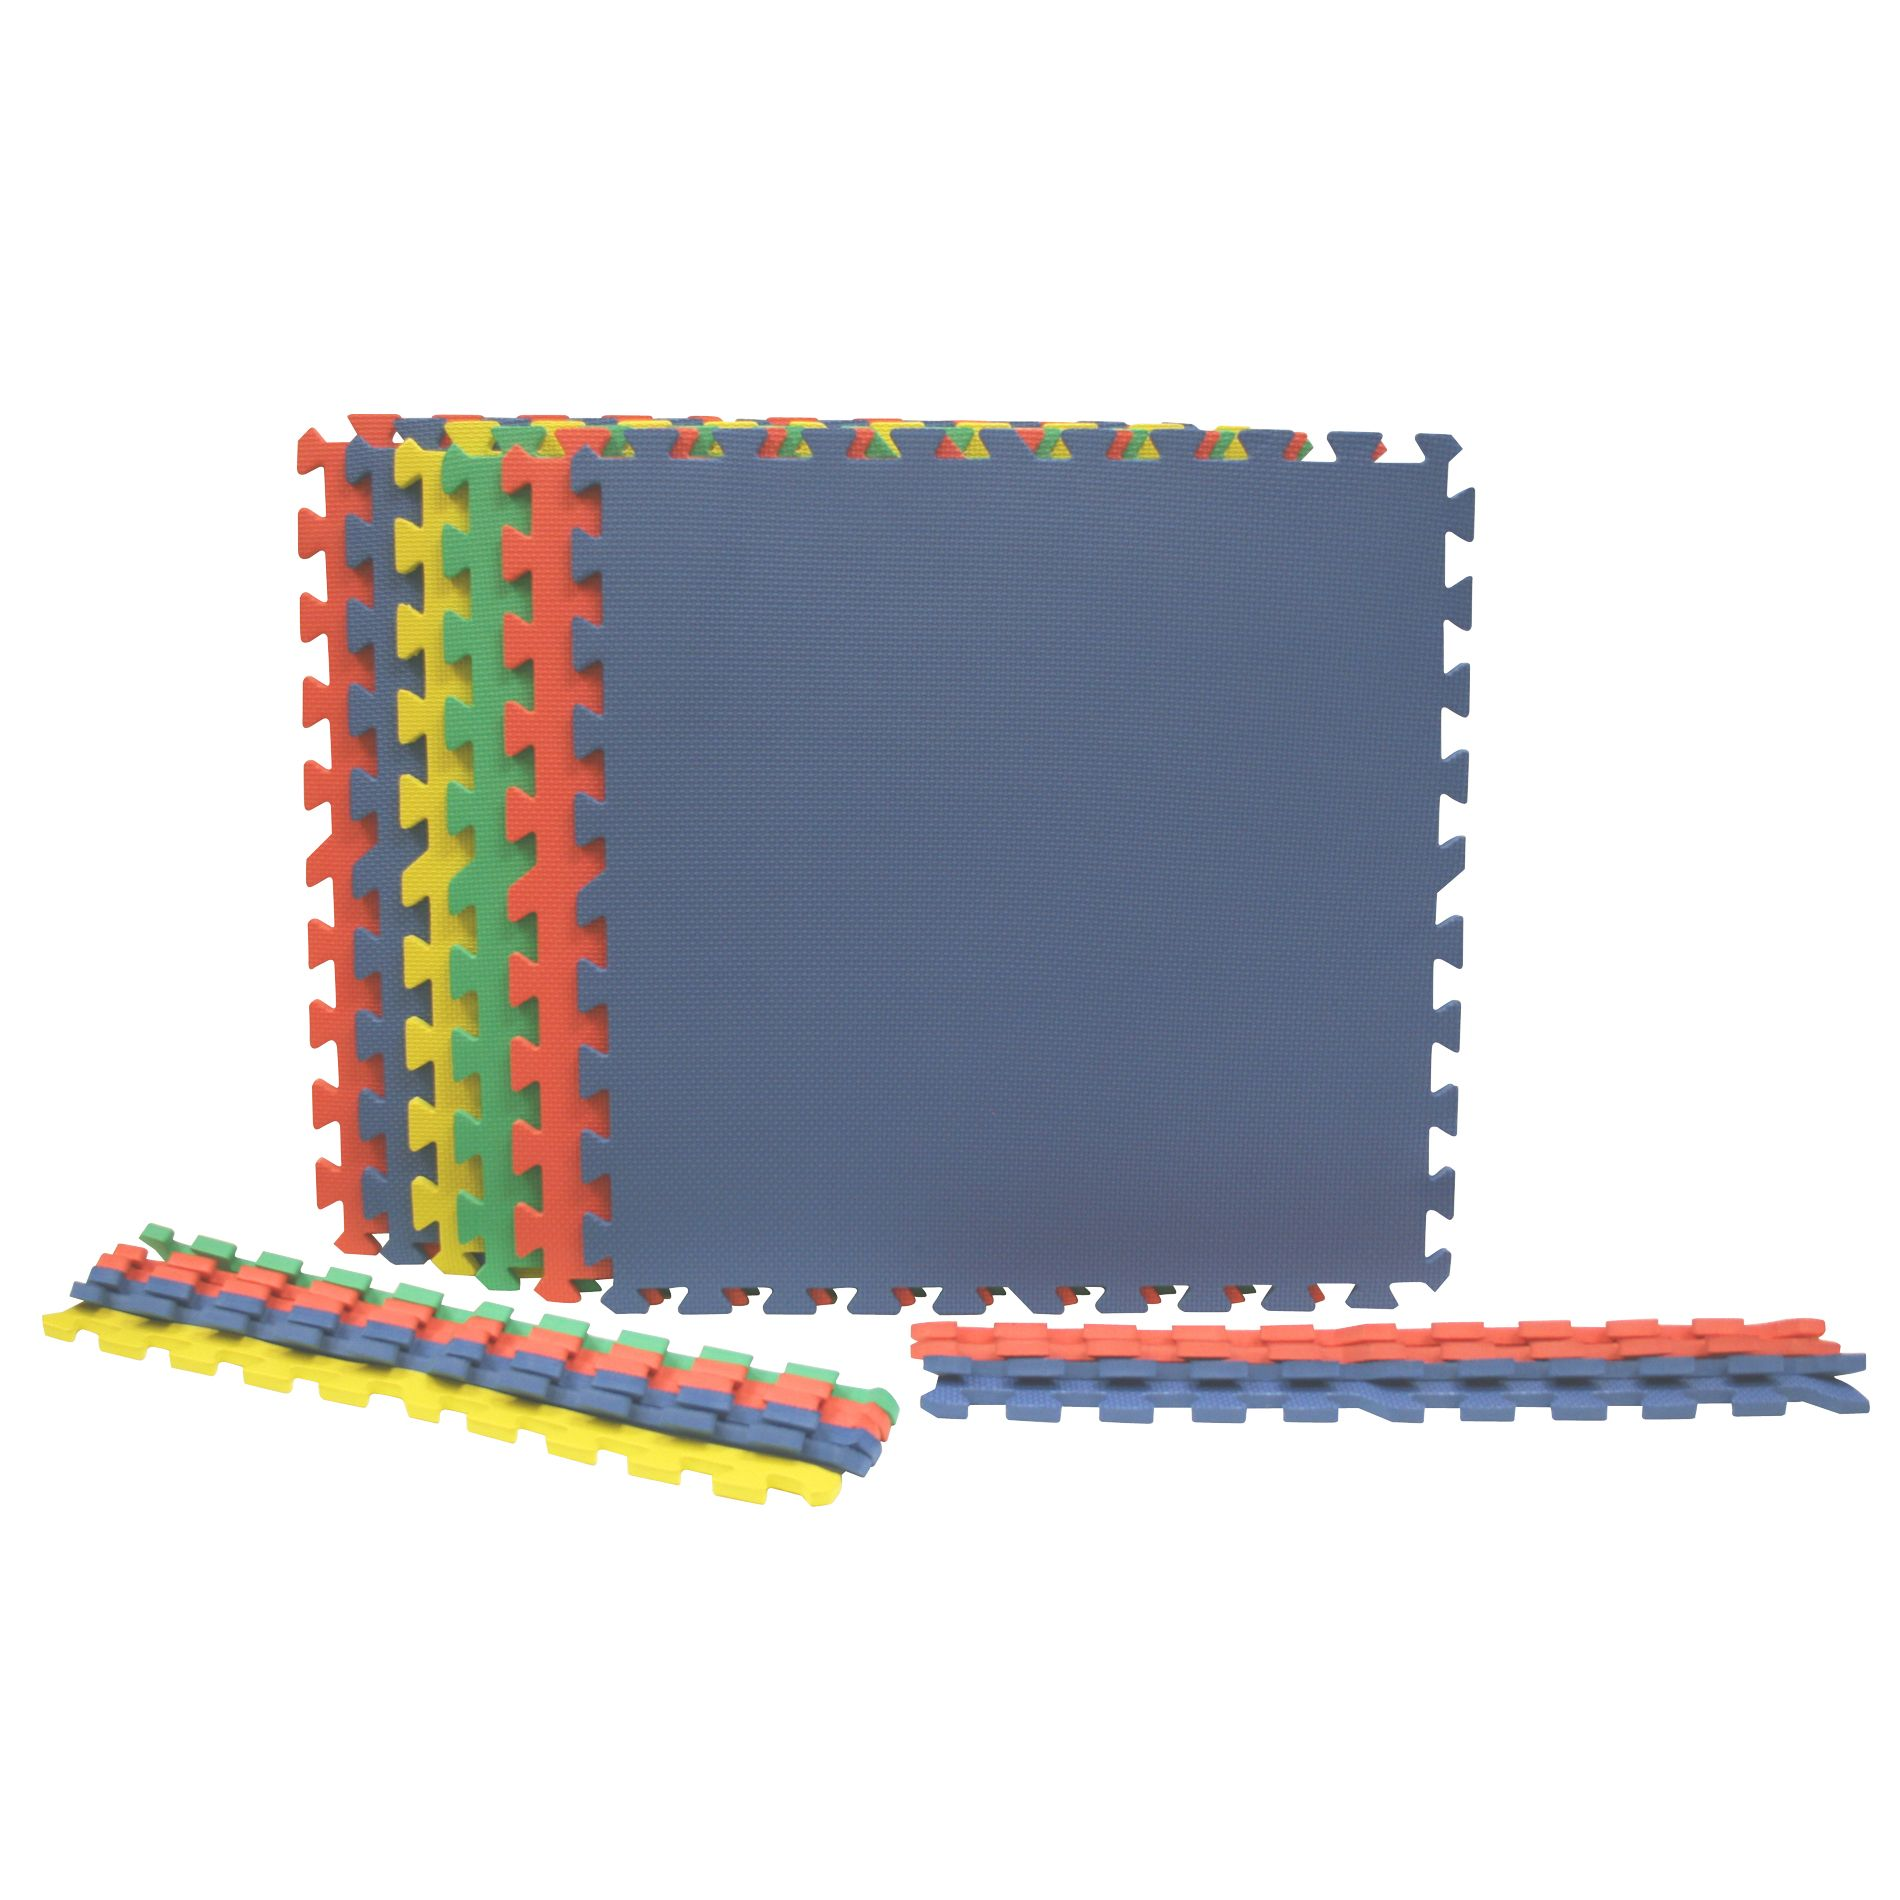 Best Step Primary Colors Foam Flooring - 6 pack